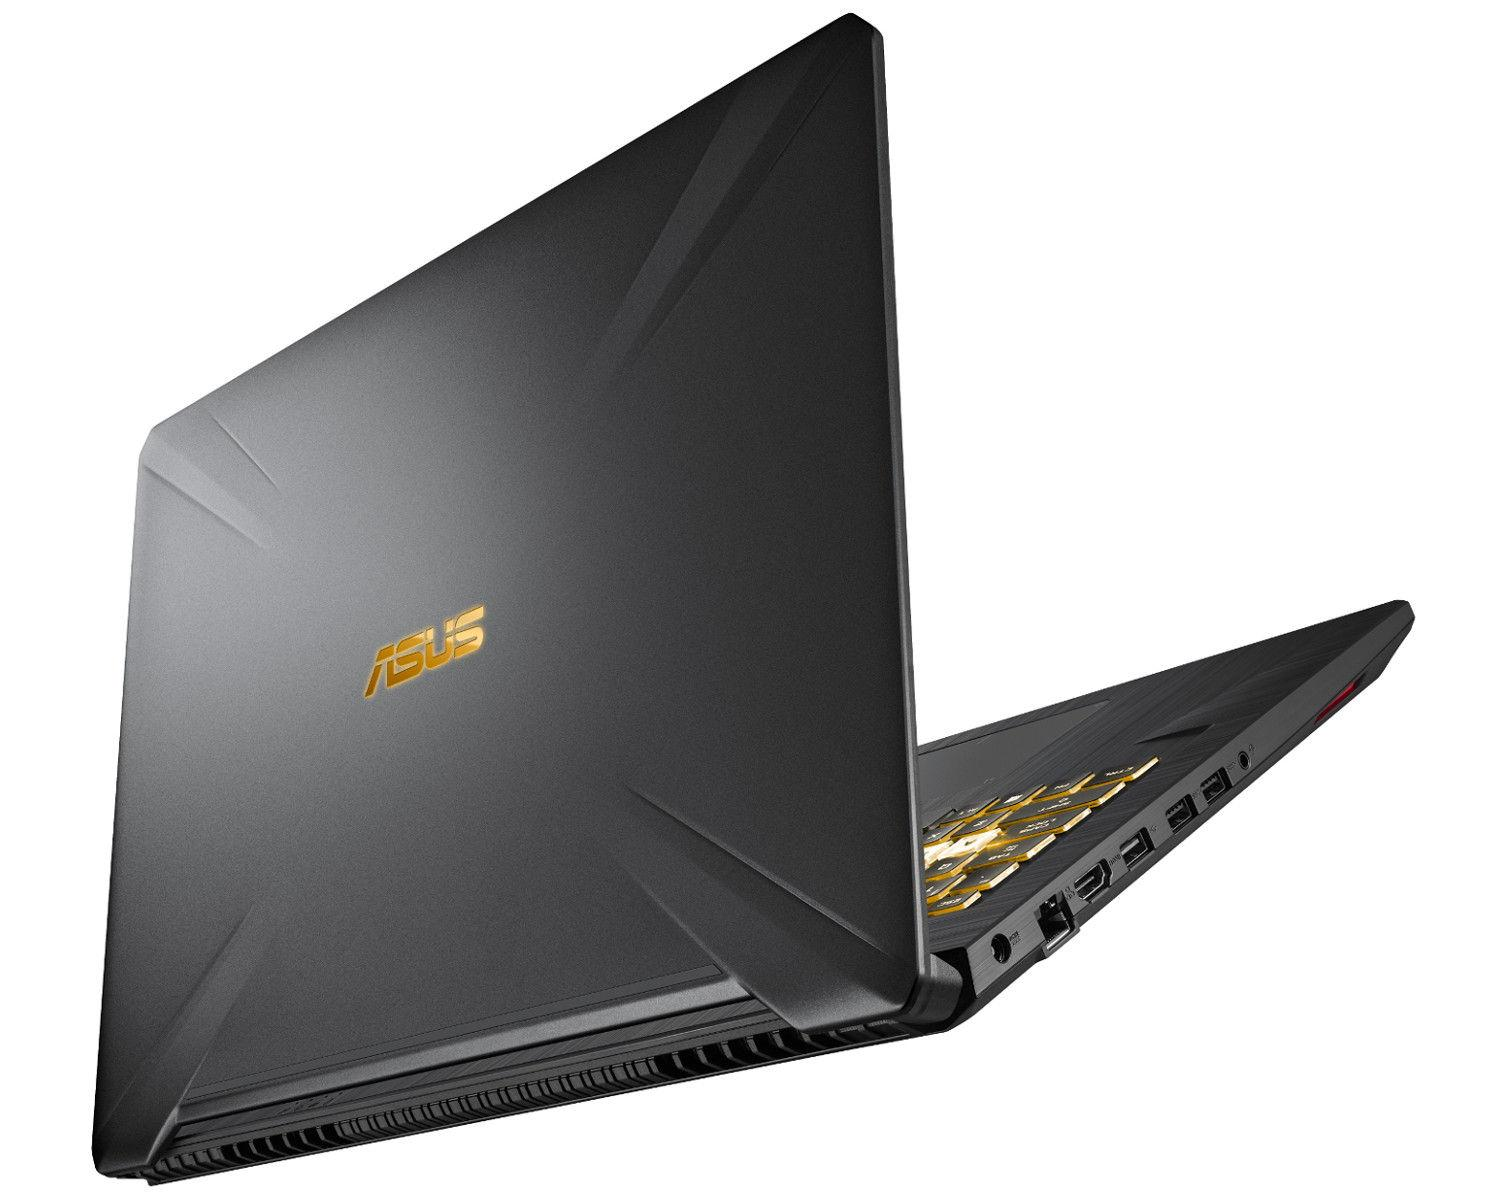 Image du PC portable Asus TUF 765GM-EV149T Noir/Gold - GTX 1060 144 Hz